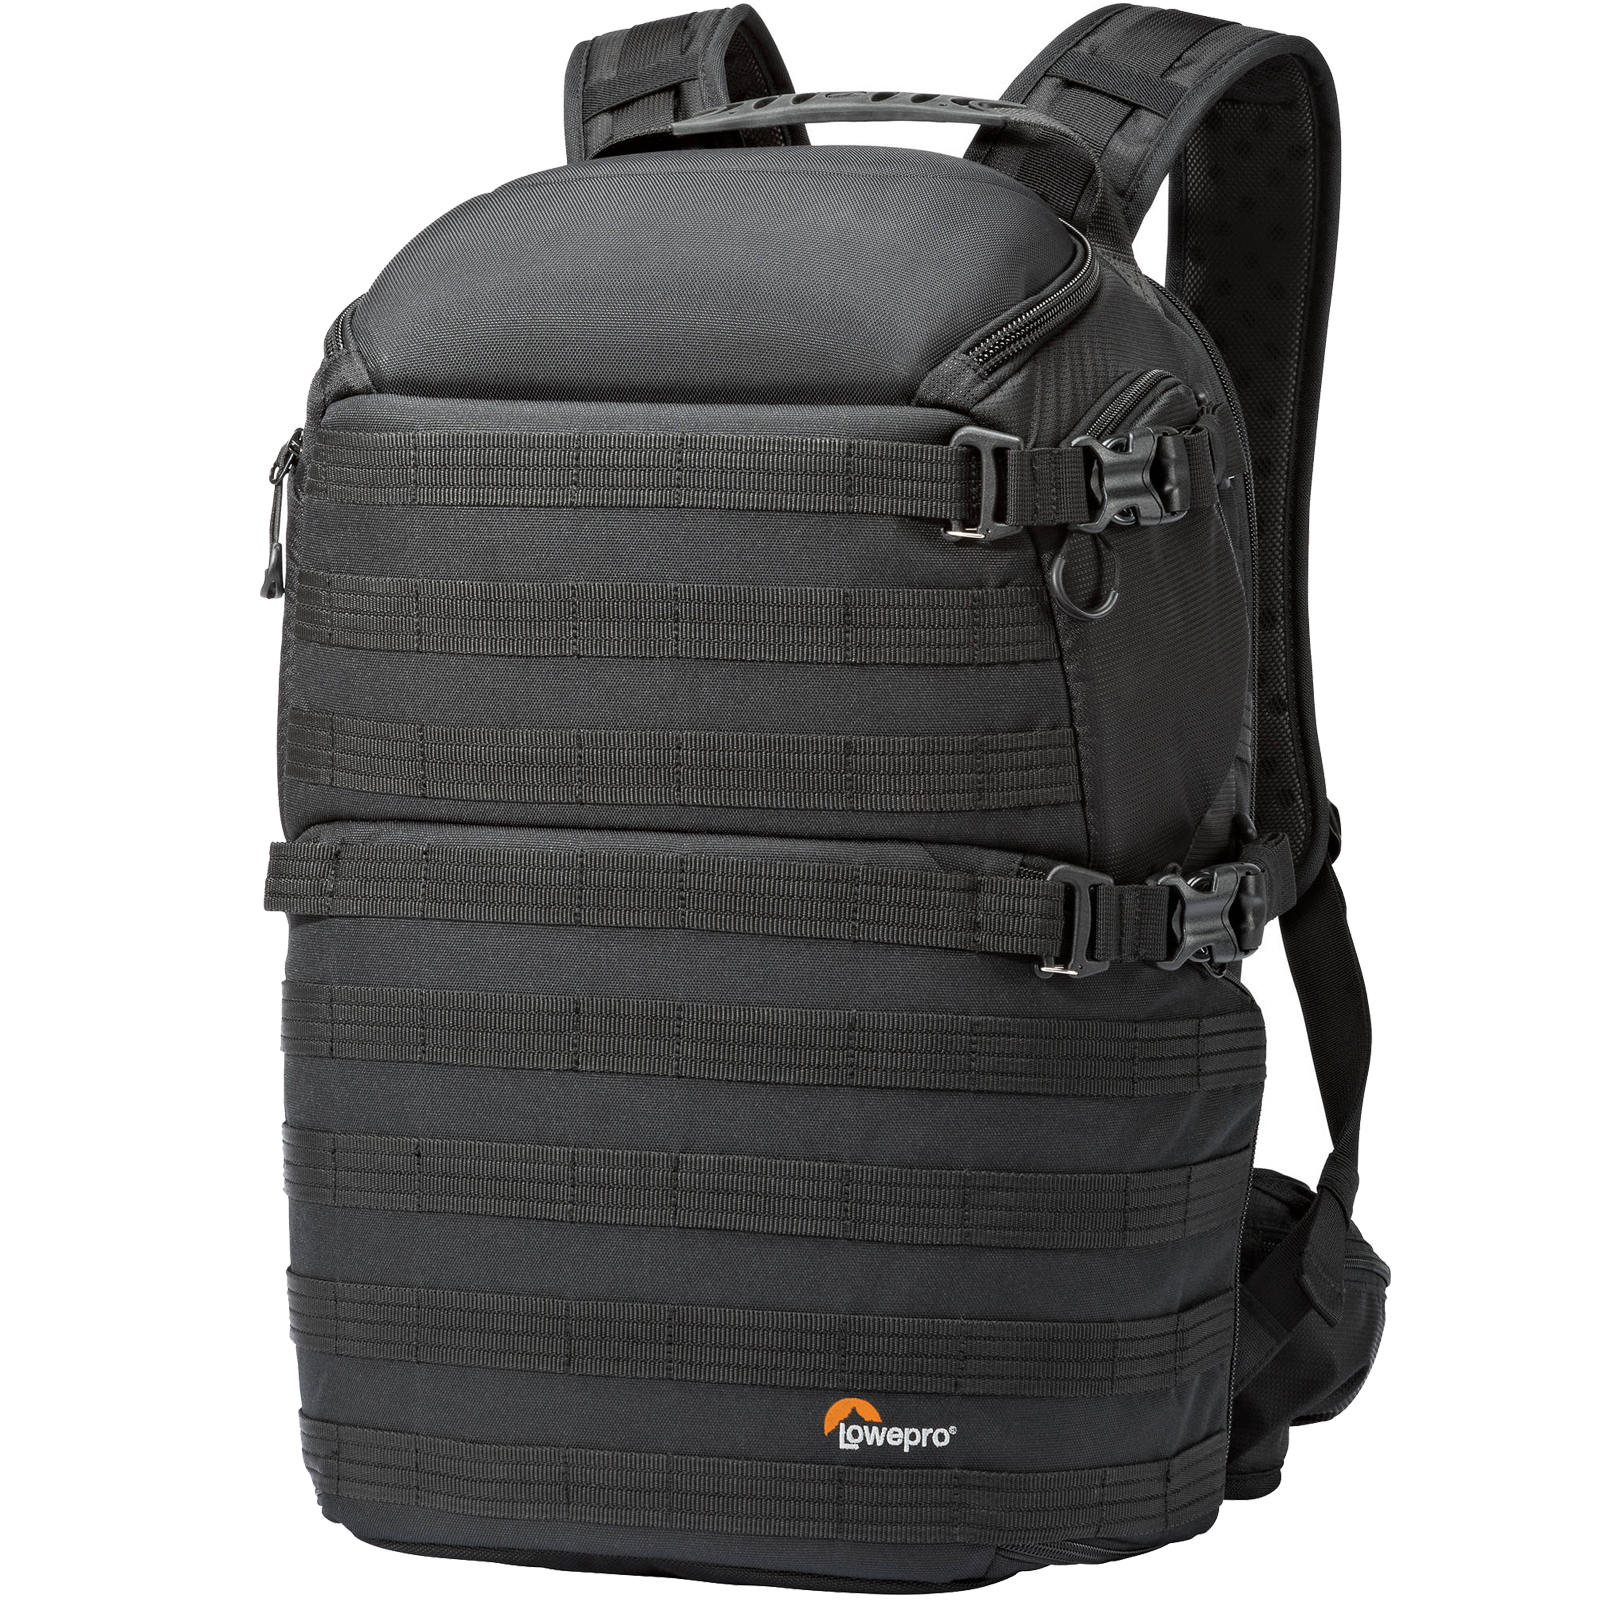 Lowepro Pro Tactic 450 AW Digital SLR Camera Backpack Case (Black) by unknown